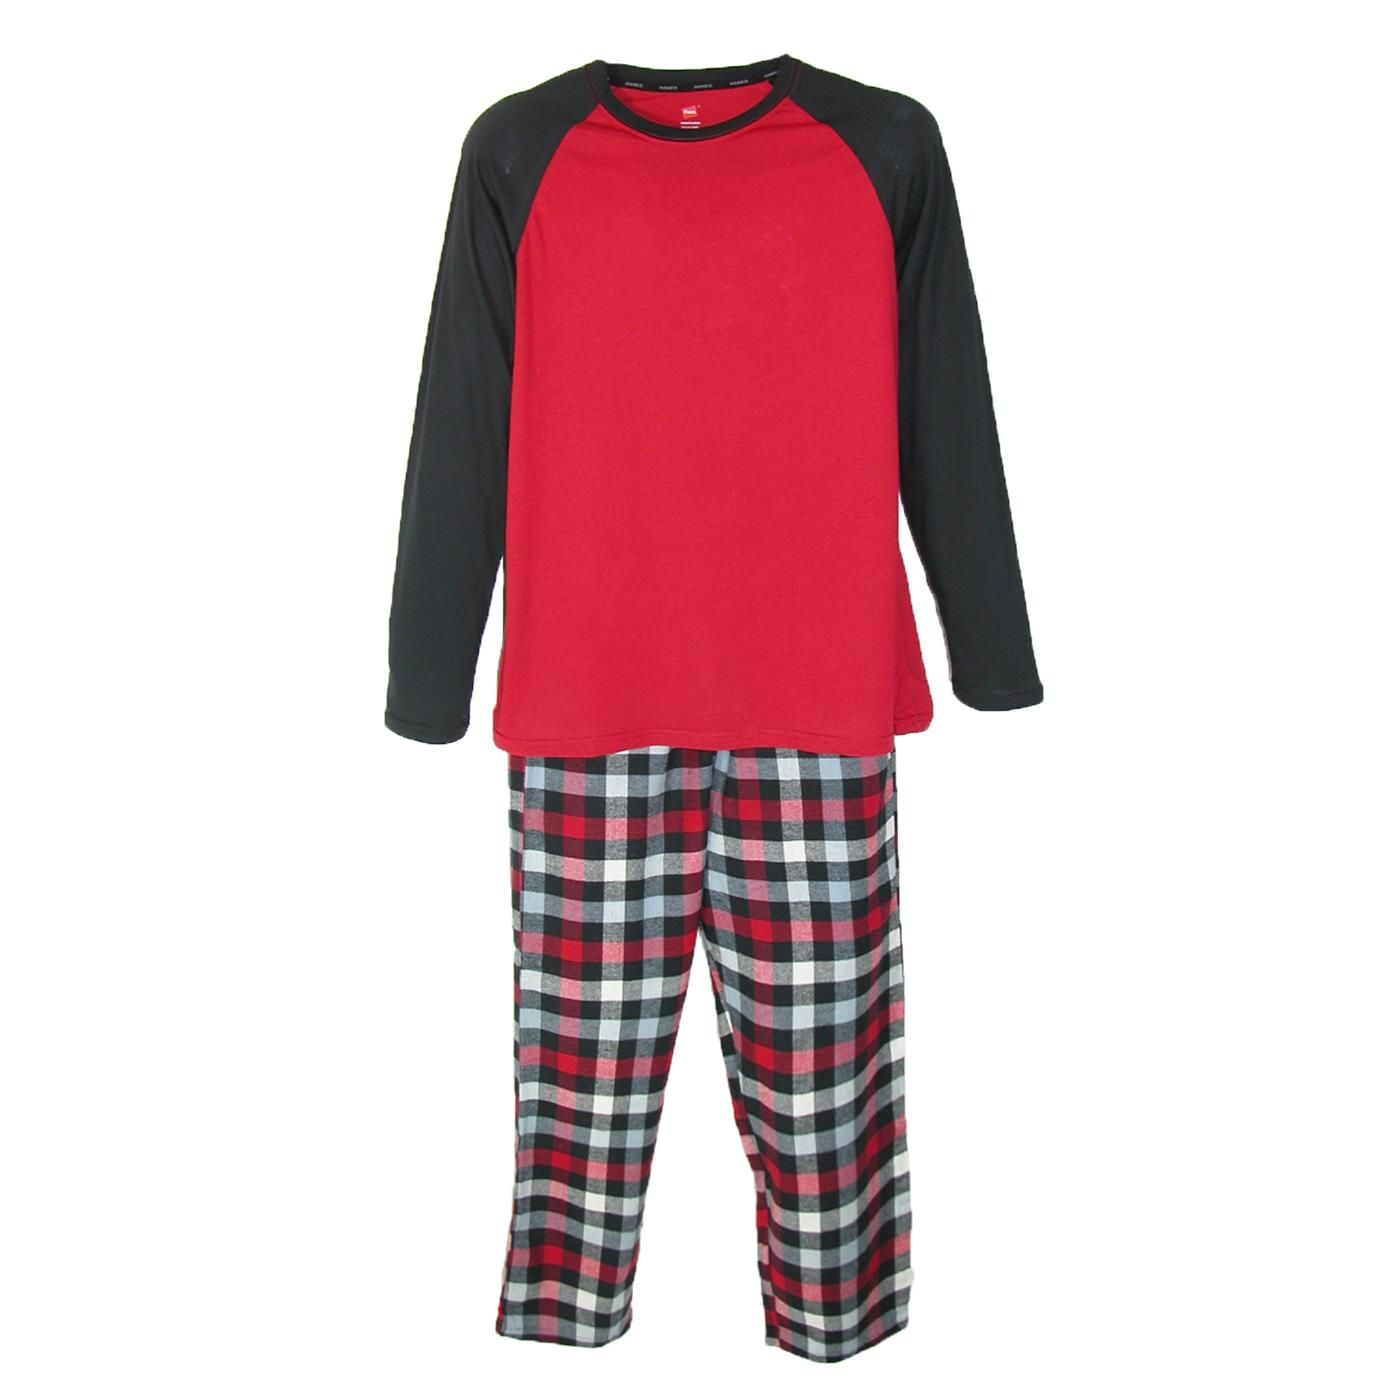 Cotton Jersey & Flannel Sleep Set by Hanes. This incredibly soft and comfy sleep set is perfect for a warm comfortable nights sleep. Also, great as lounge wear on weekends or days off when you just want to relax and be comfortable. The flannel pajama bottoms come in a plaid pattern and the coordinating solid color top has a crew neck. The sleep set is made of 100% soft cotton. The pants have a covered elastic waist band for added comfort and side pockets for convenience.